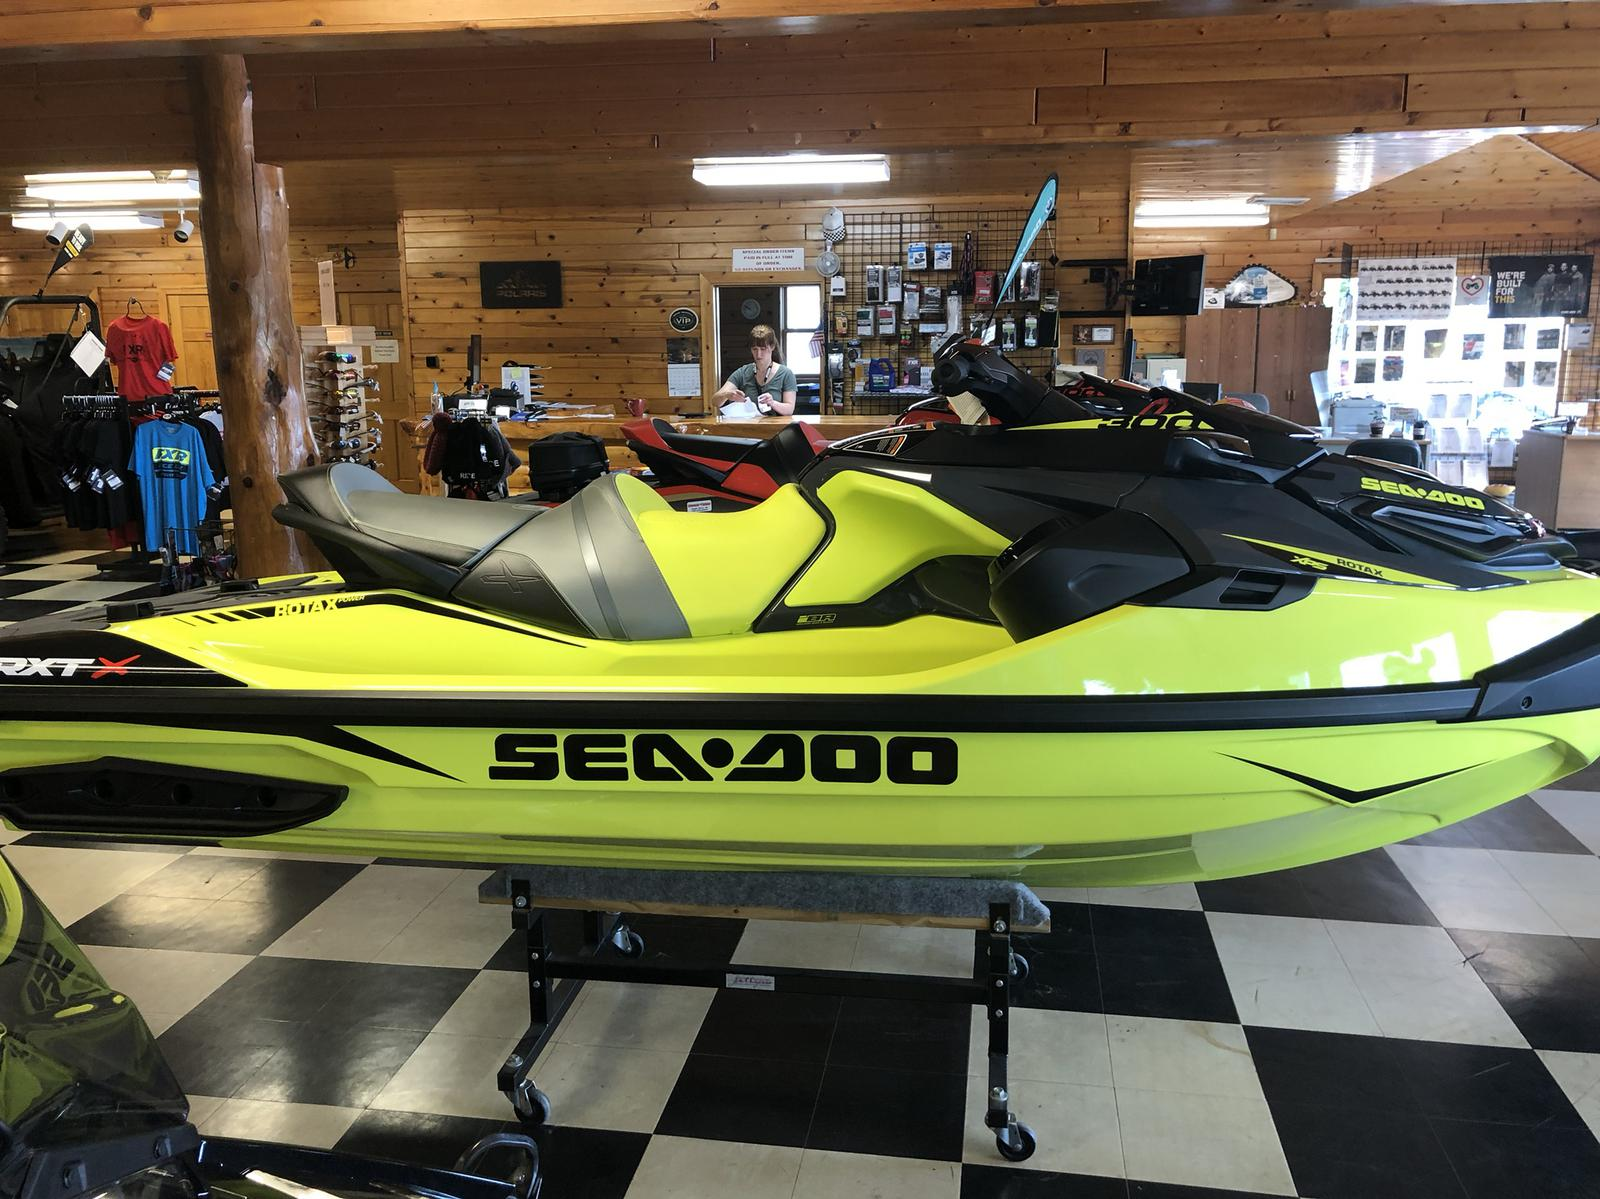 Inventory from Sea-Doo and Yamaha Track Side Eagle River, WI (715